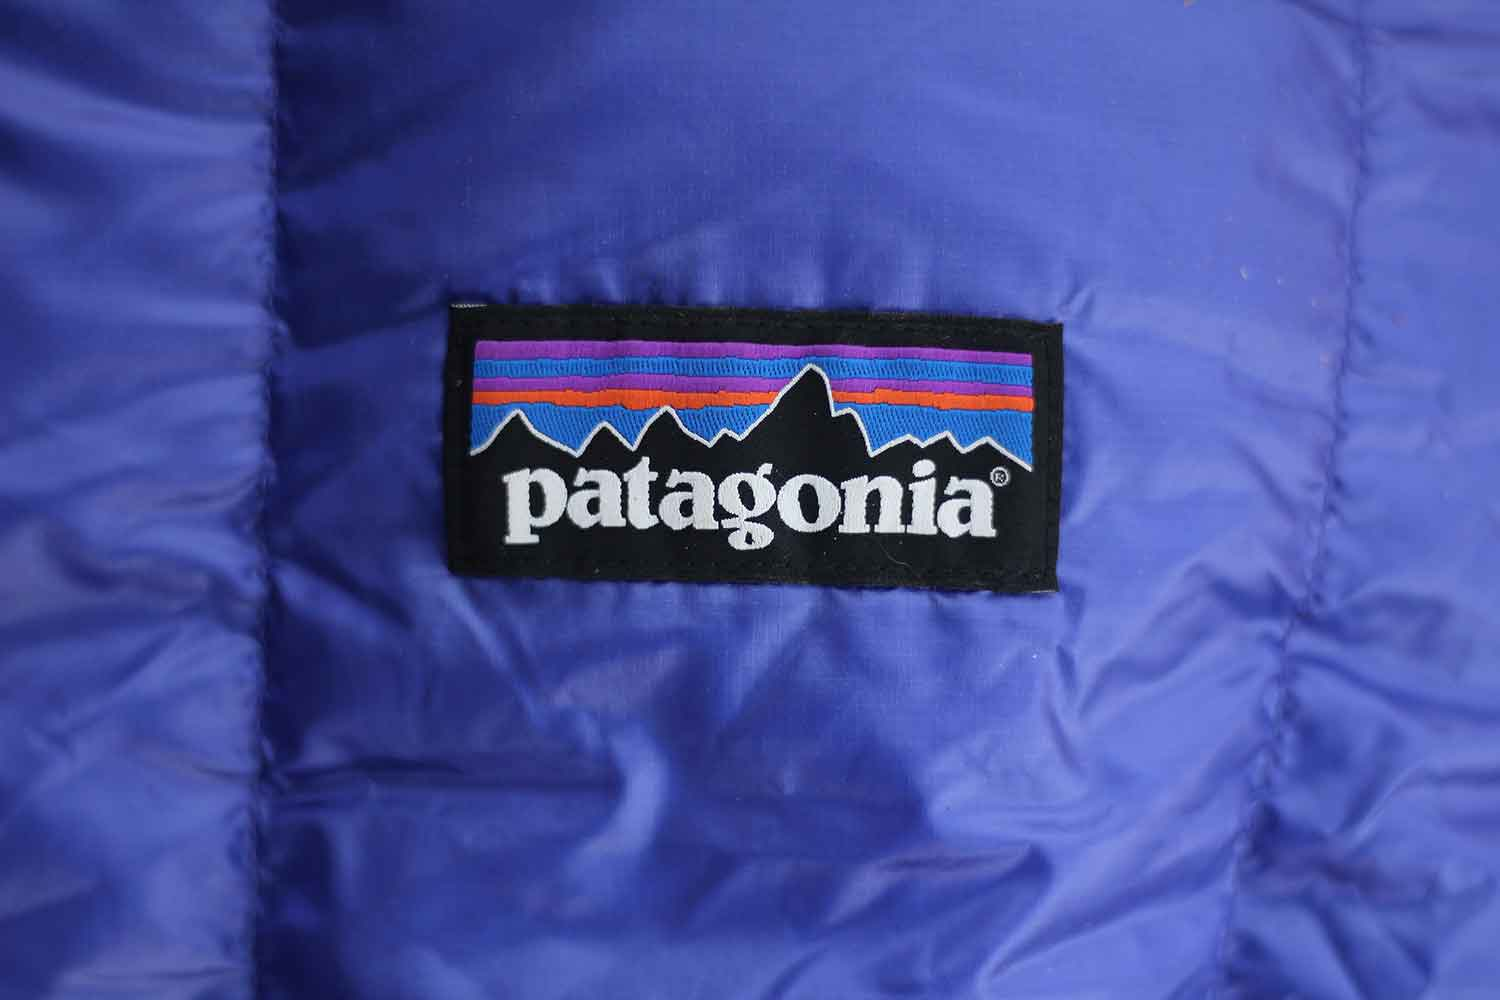 Get up to 70% Off Used Patagonia Gear